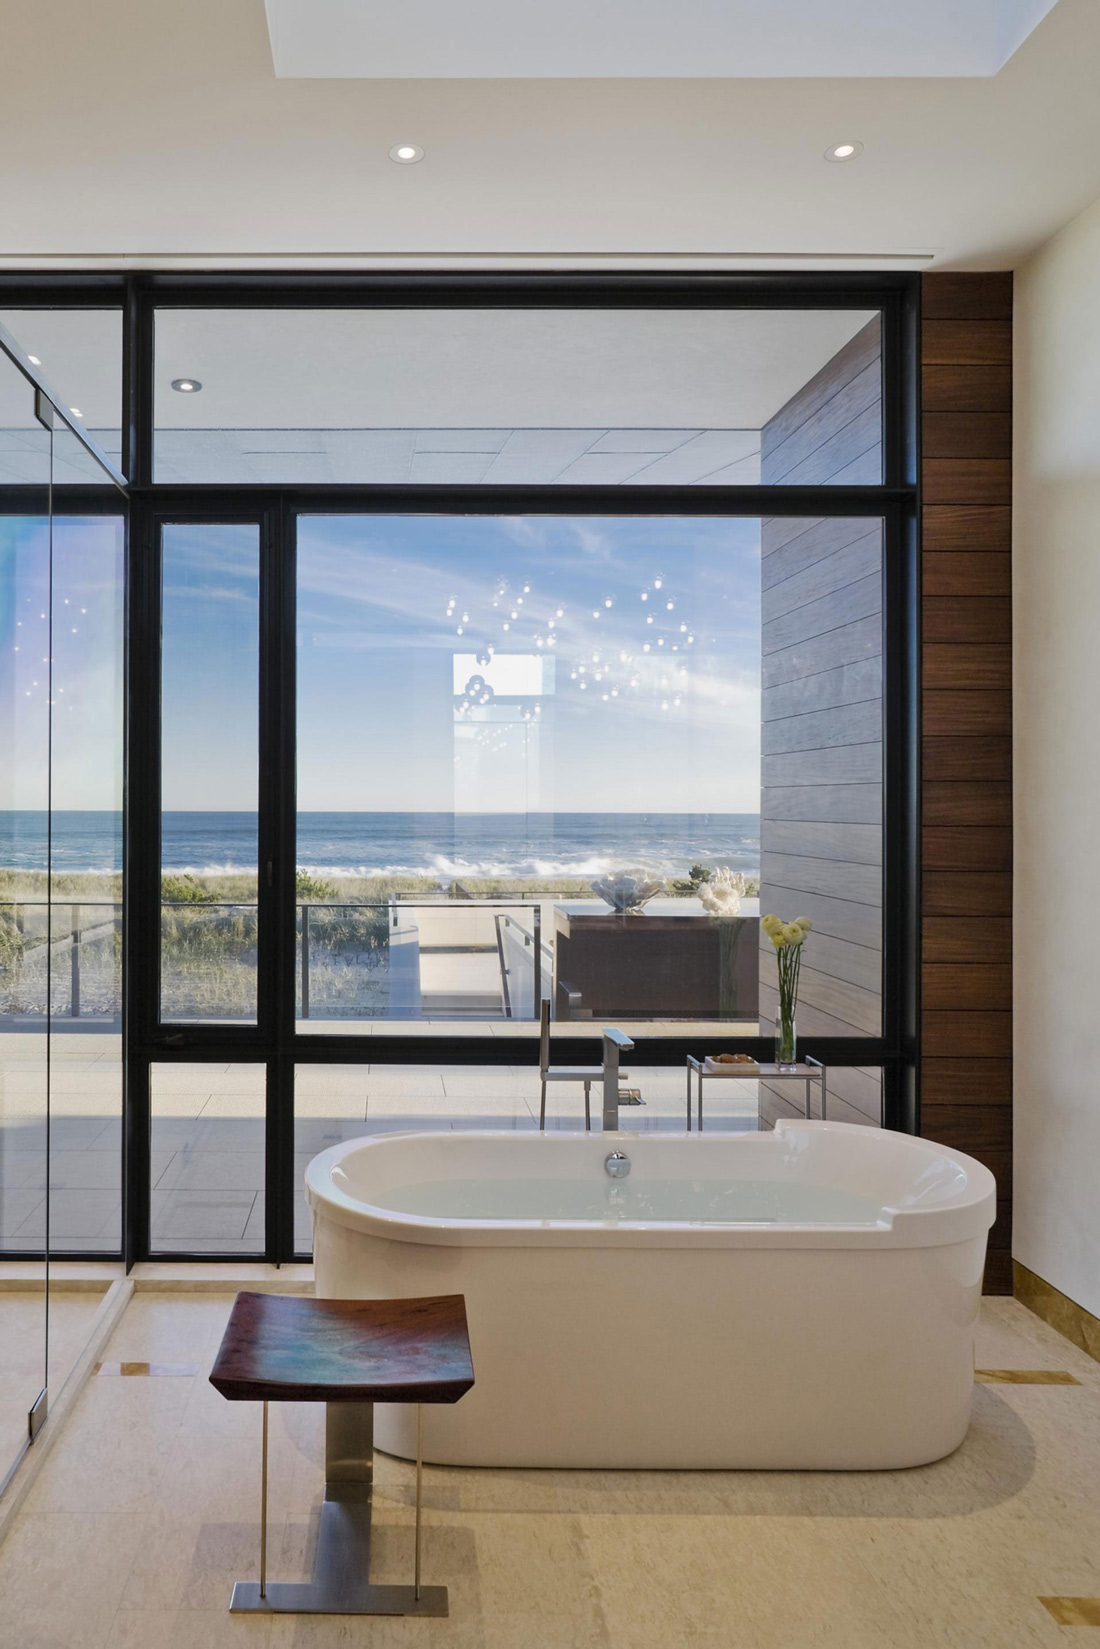 Bathroom Tub Floor To Ceiling Windows Summer Retreat In Southampton New York